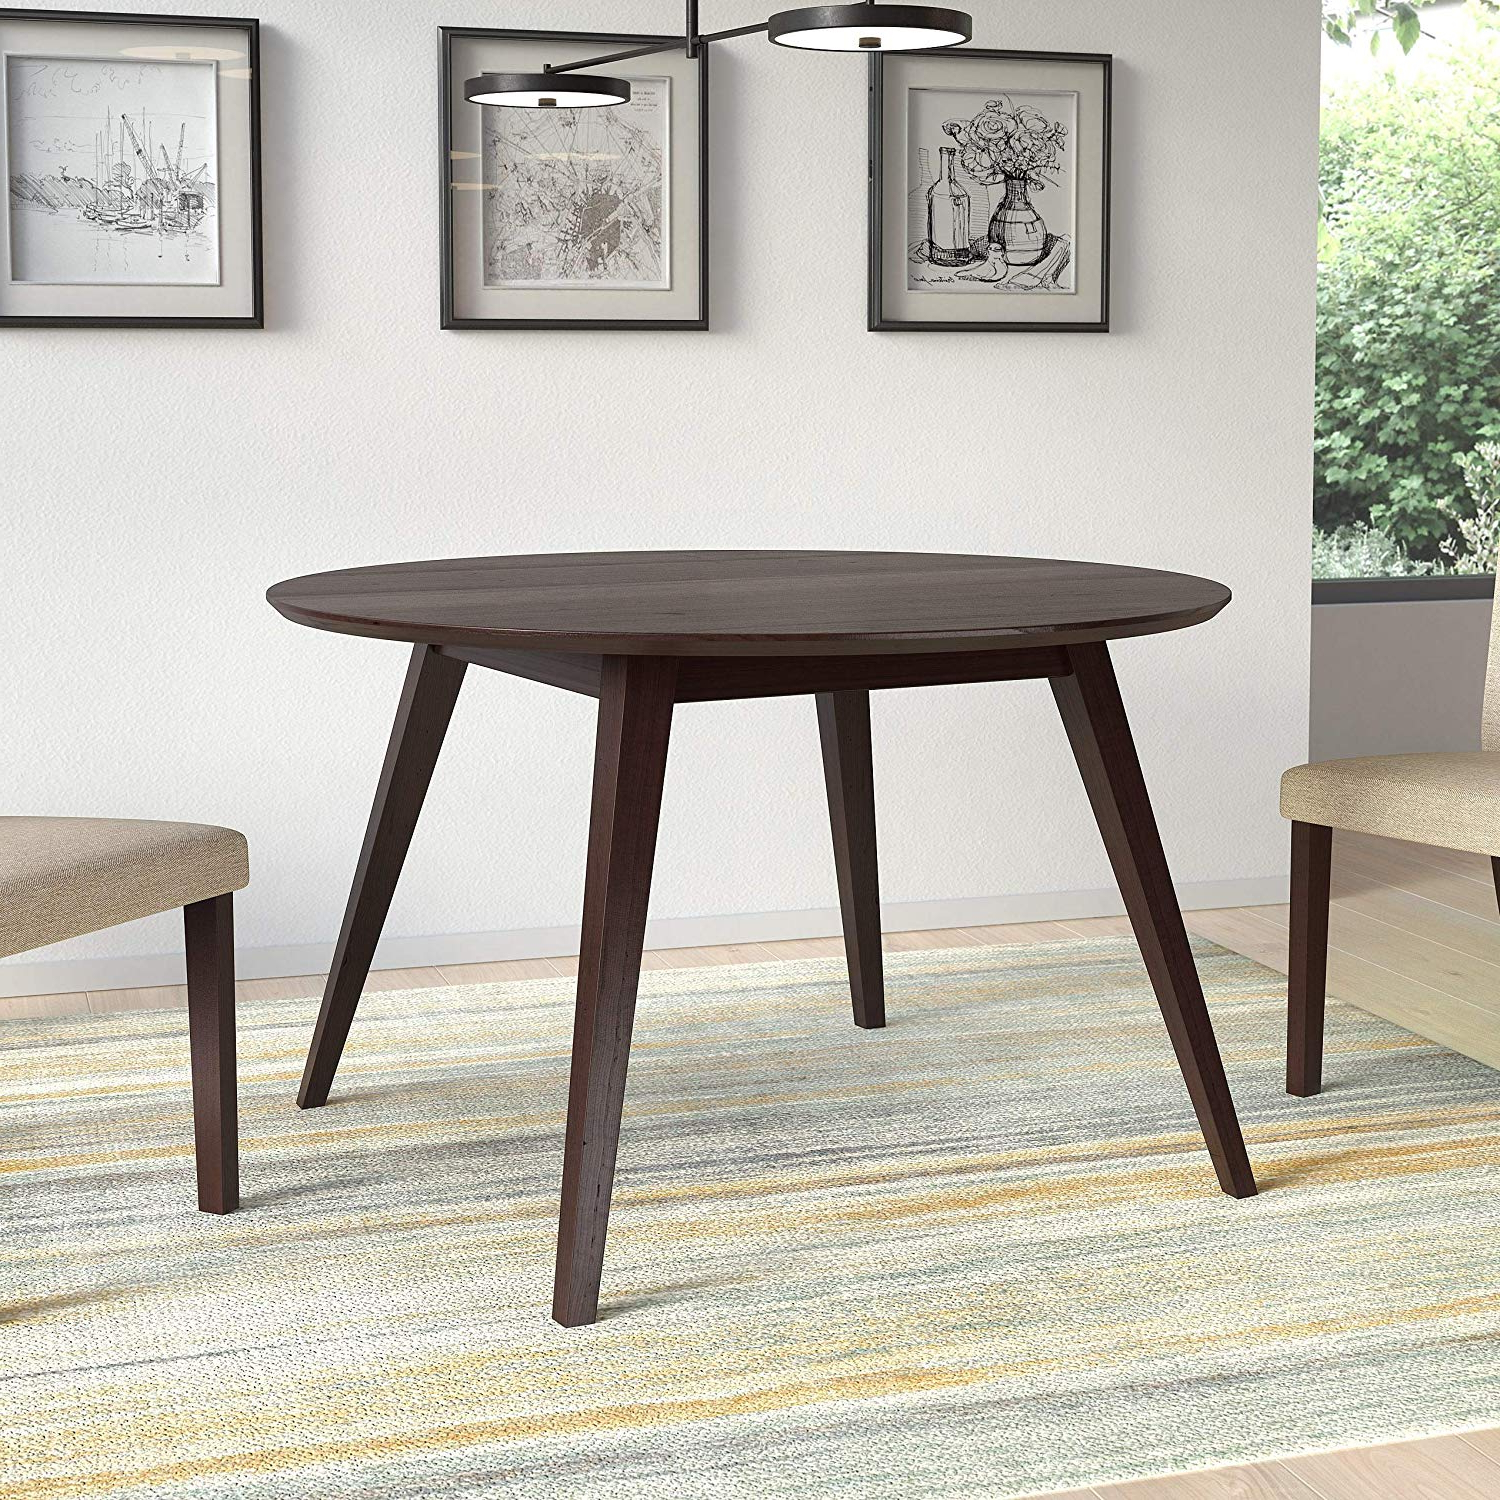 Most Current Atwood Transitional Square Dining Tables Pertaining To Amazon – Corliving Atwood Round Dining Table In (View 16 of 25)